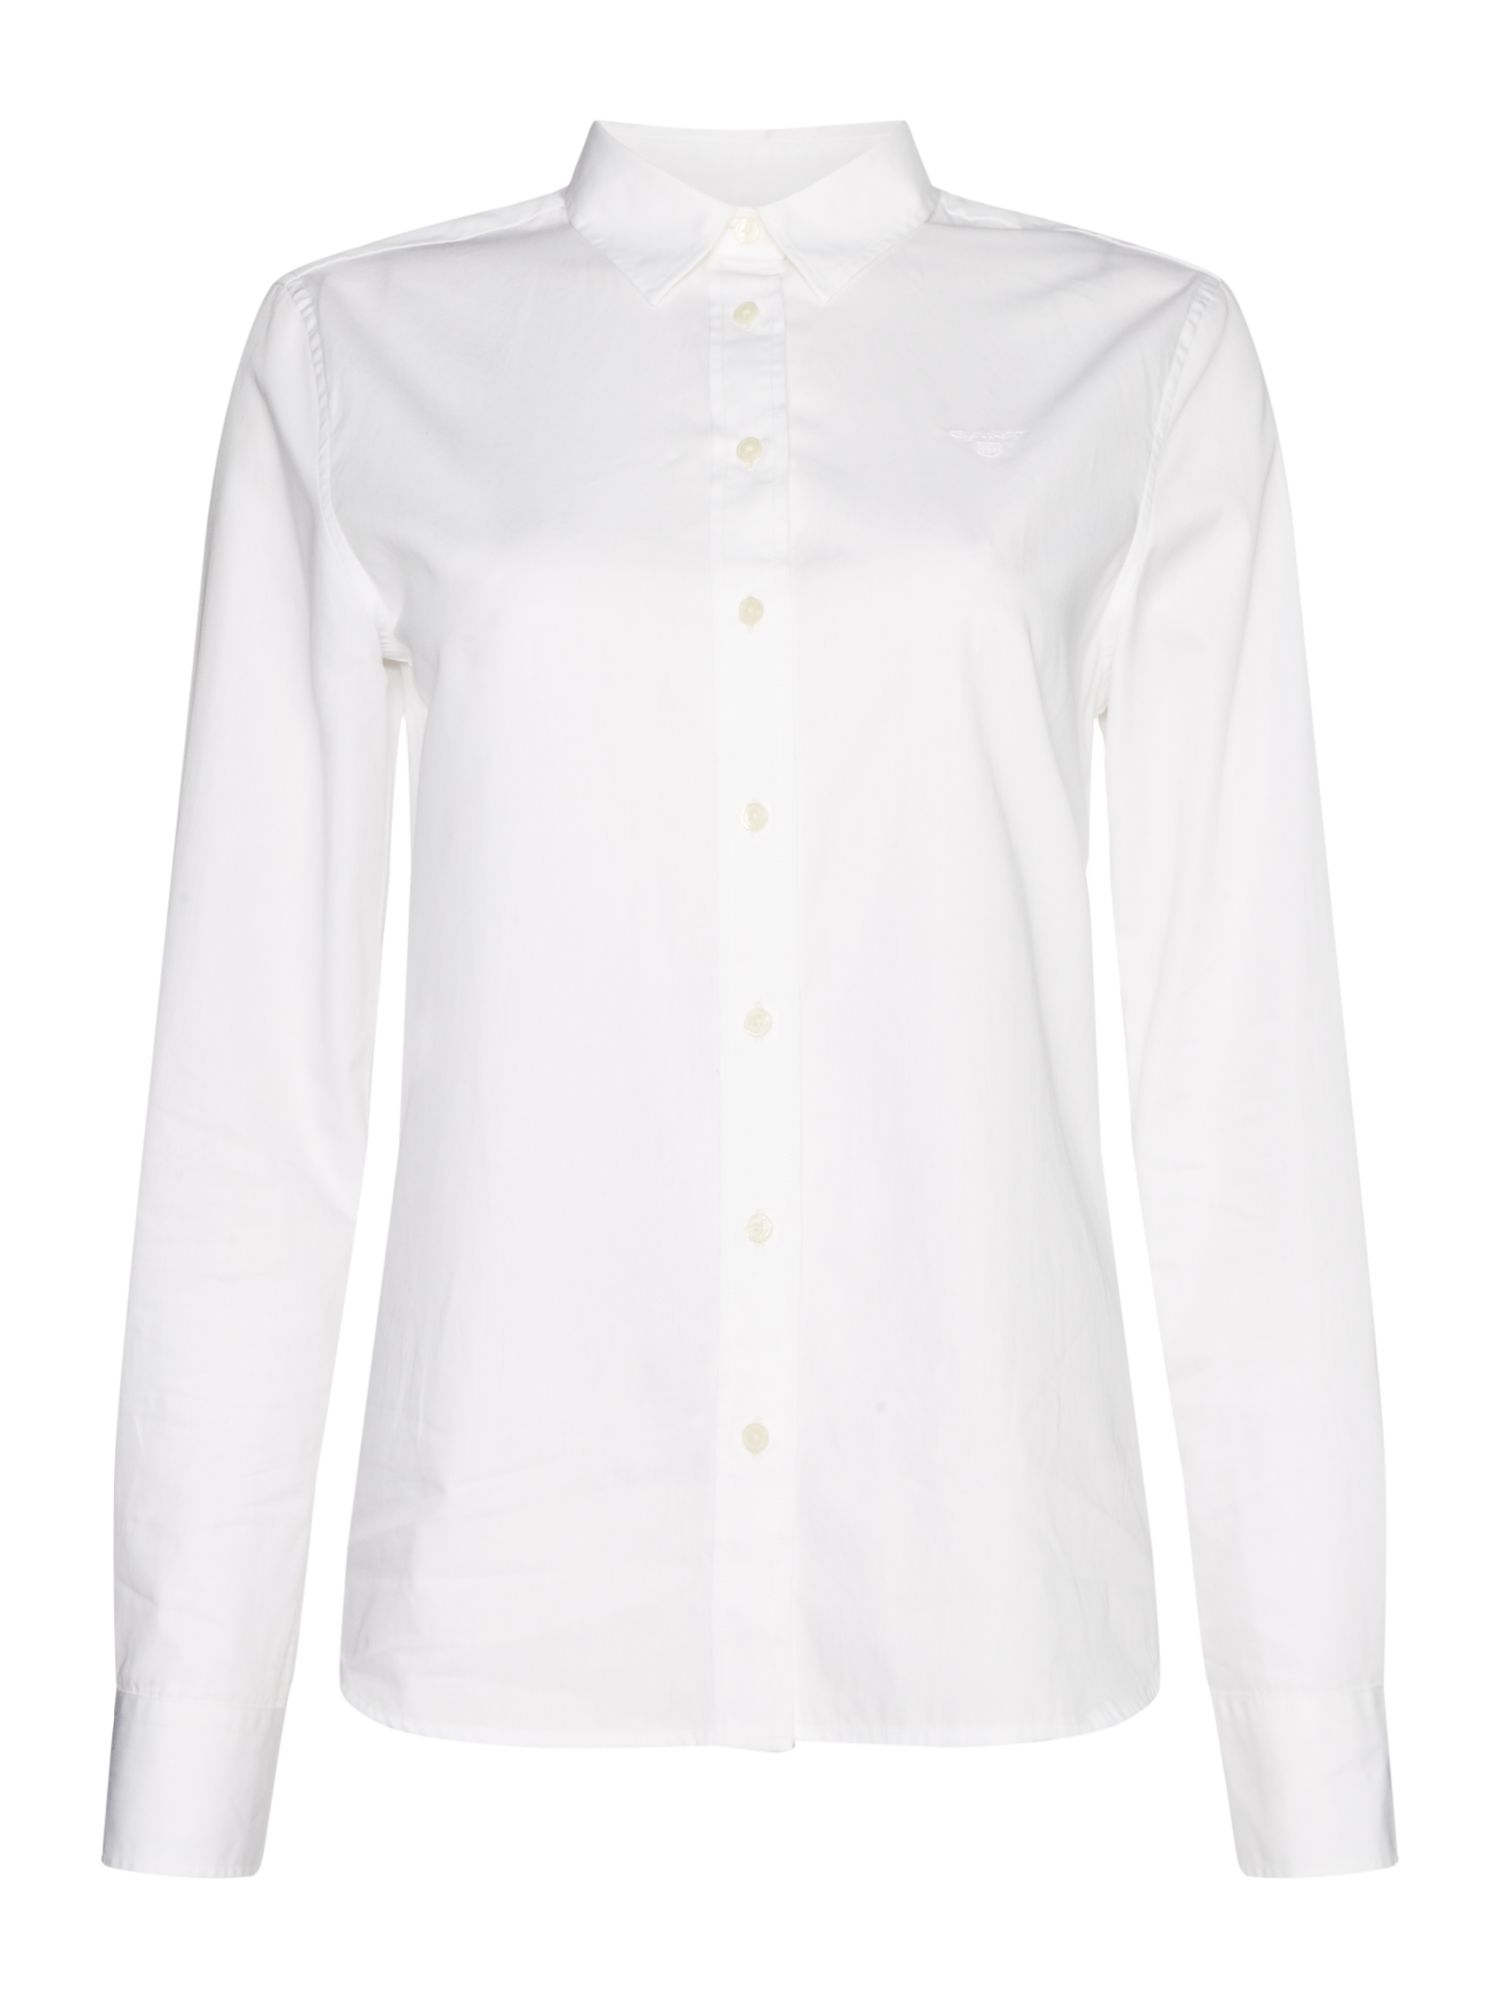 GANT Long Sleeve Button Up Broadcloth Shirt, White